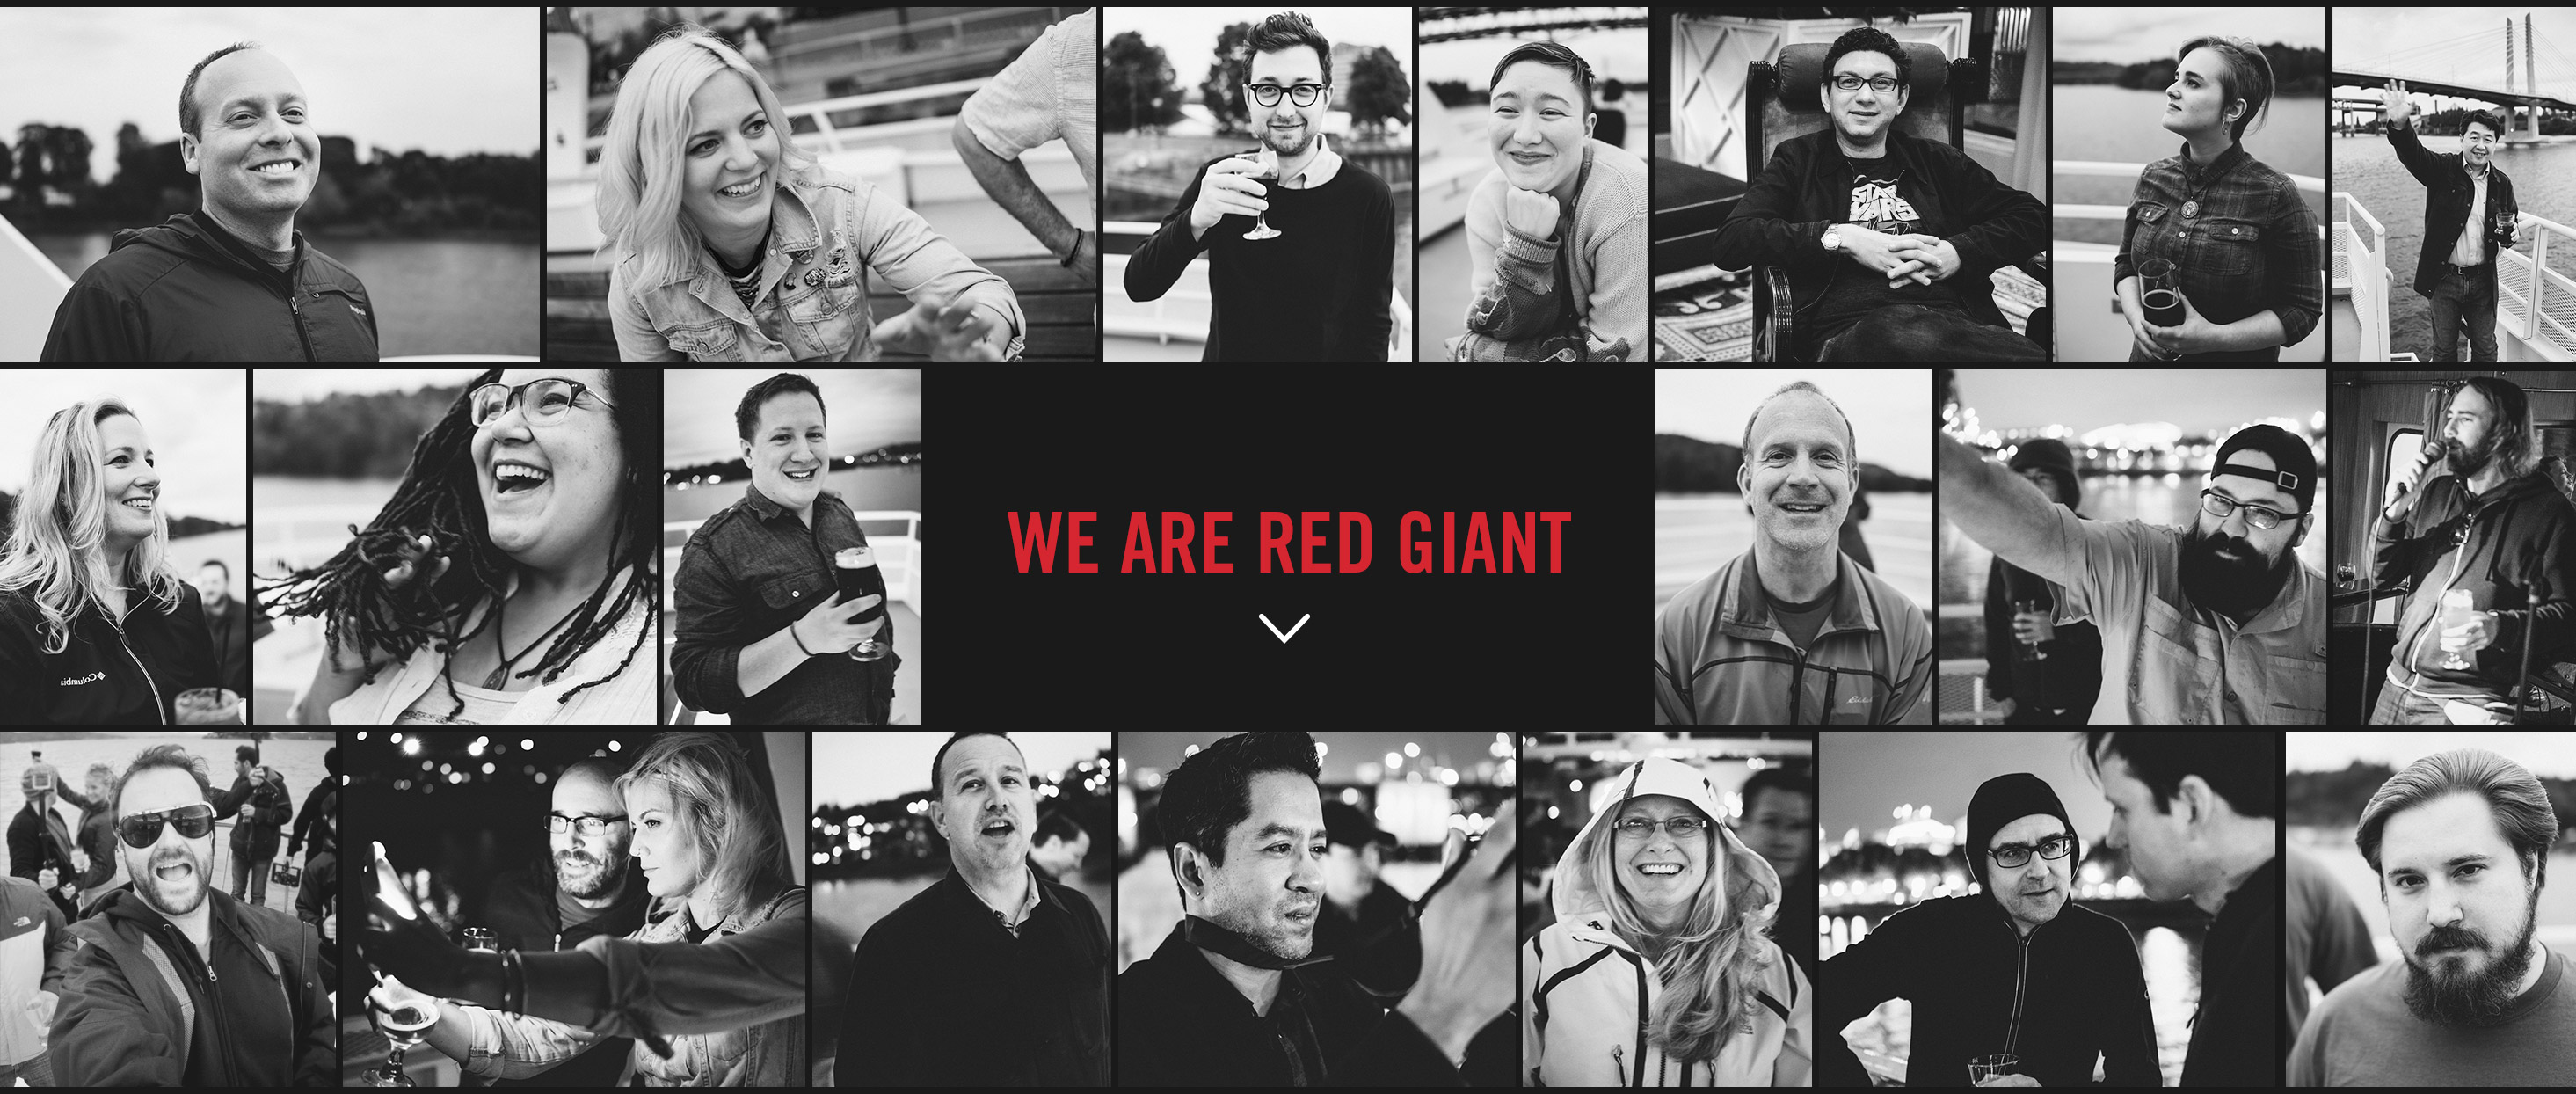 We Are Red Giant